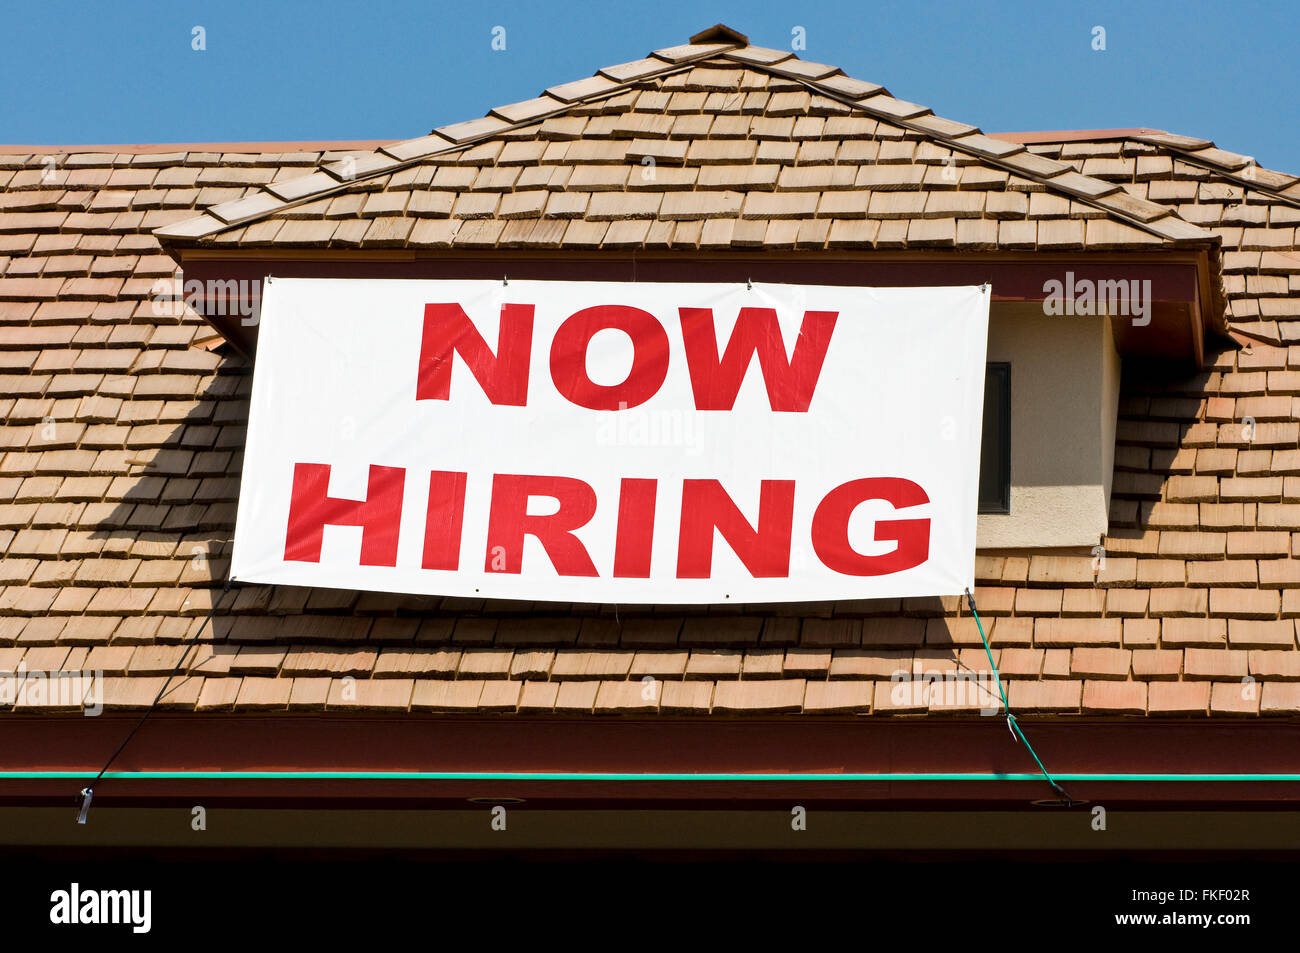 Now Hiring Banner - Stock Image